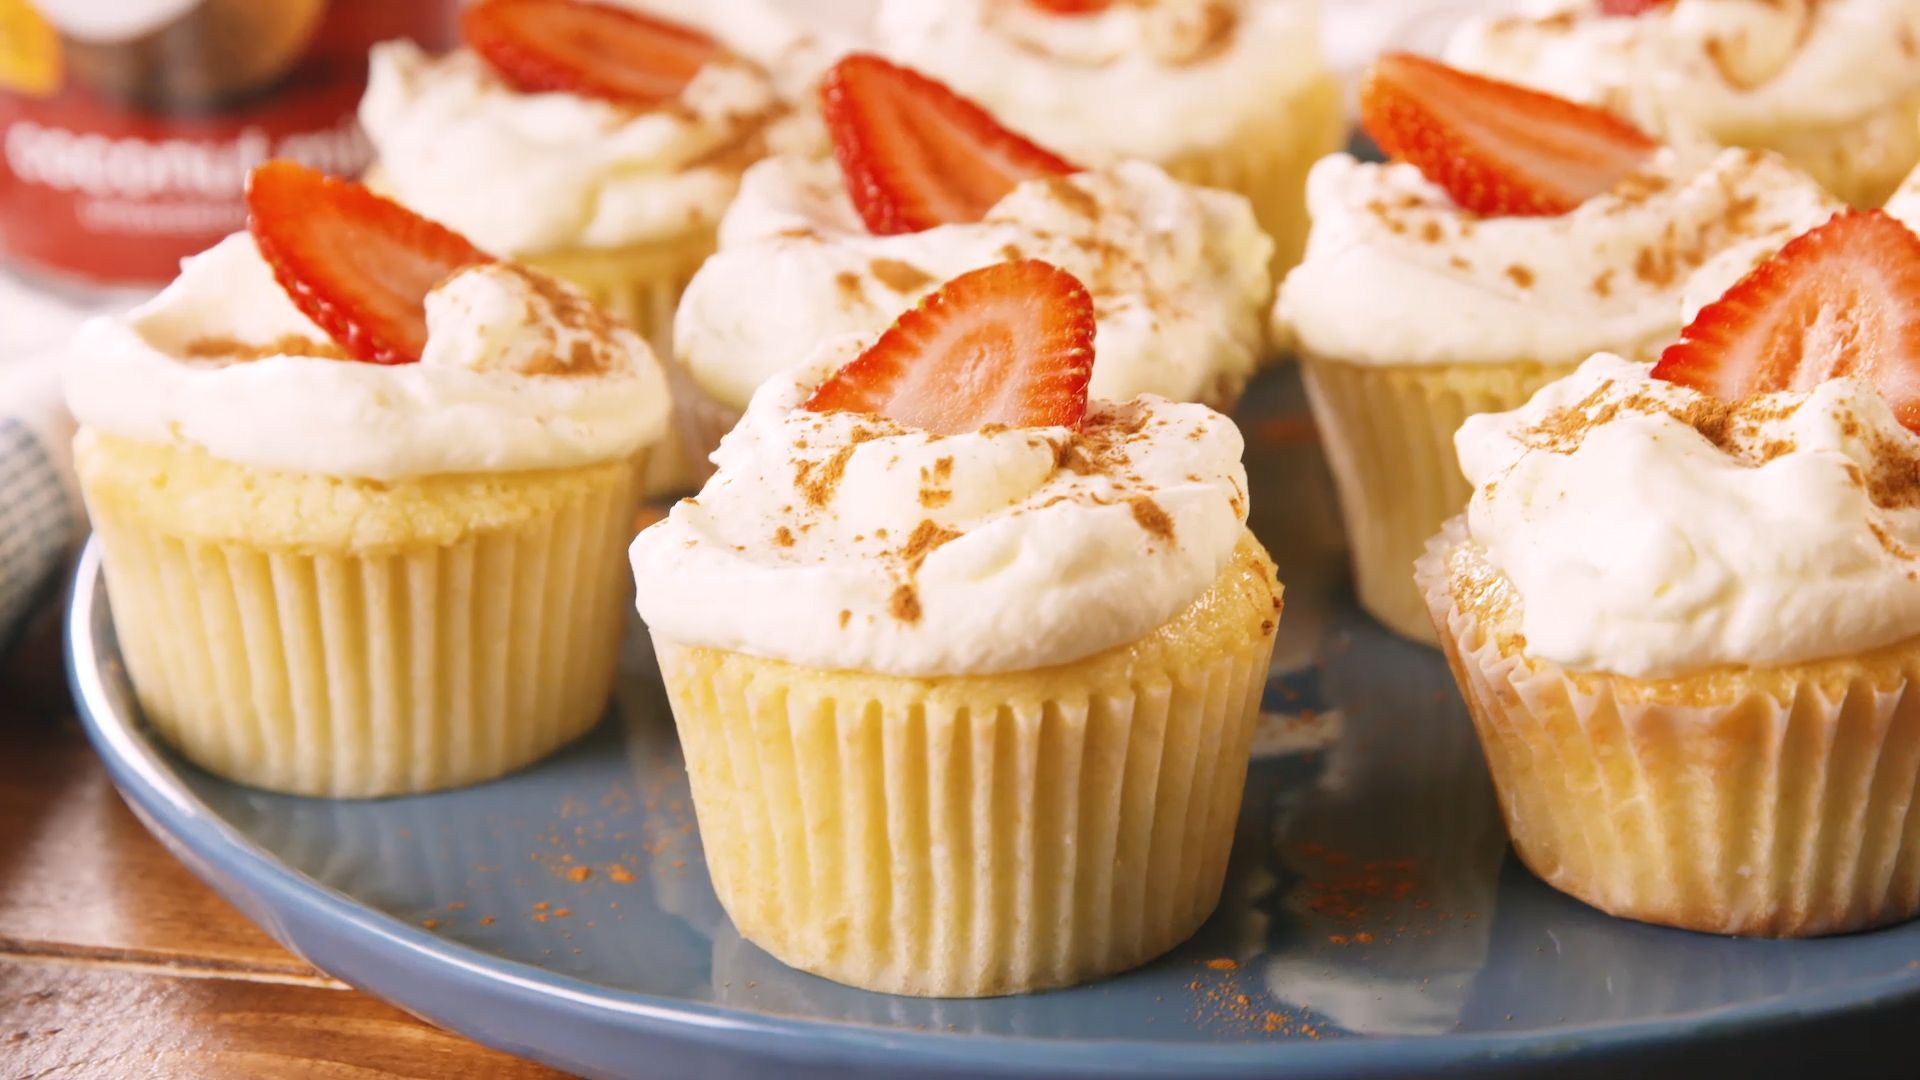 Best Tres Leches Coconut Cupcakes Recipe How To Make Tres Leches Coconut Cupcakes